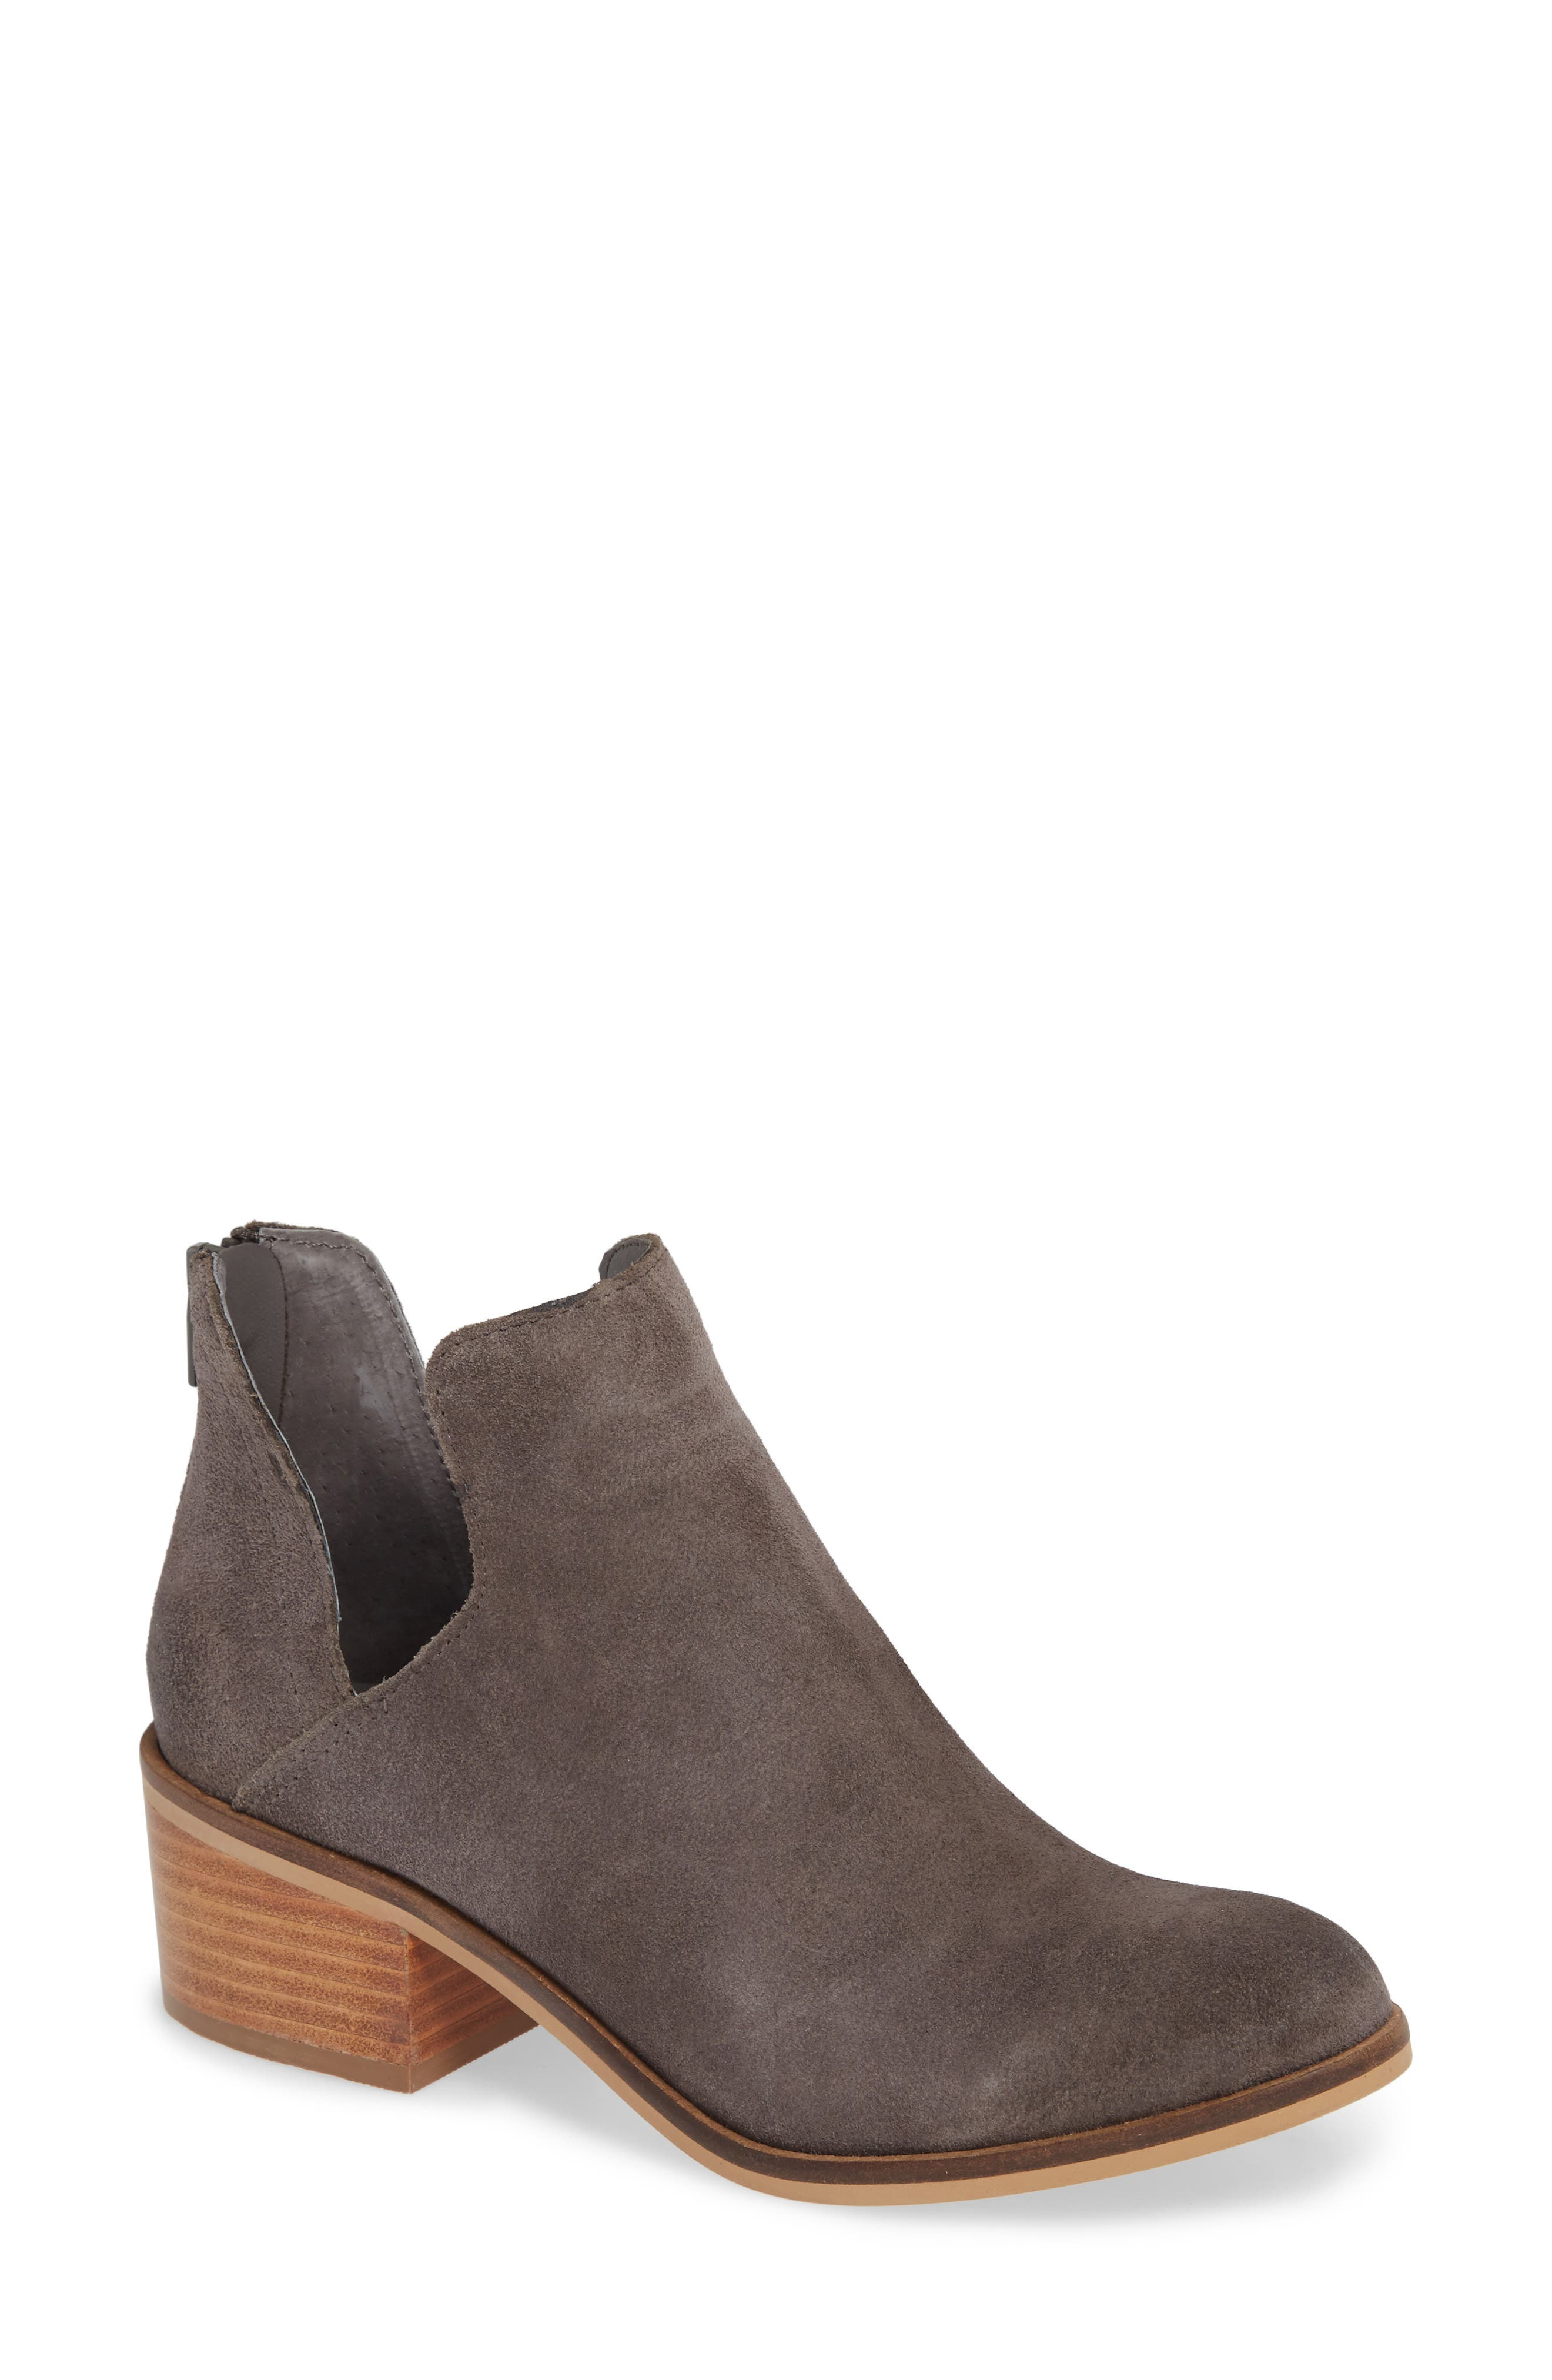 Lancaster Bootie,                             Main thumbnail 1, color,                             GREY SUEDE